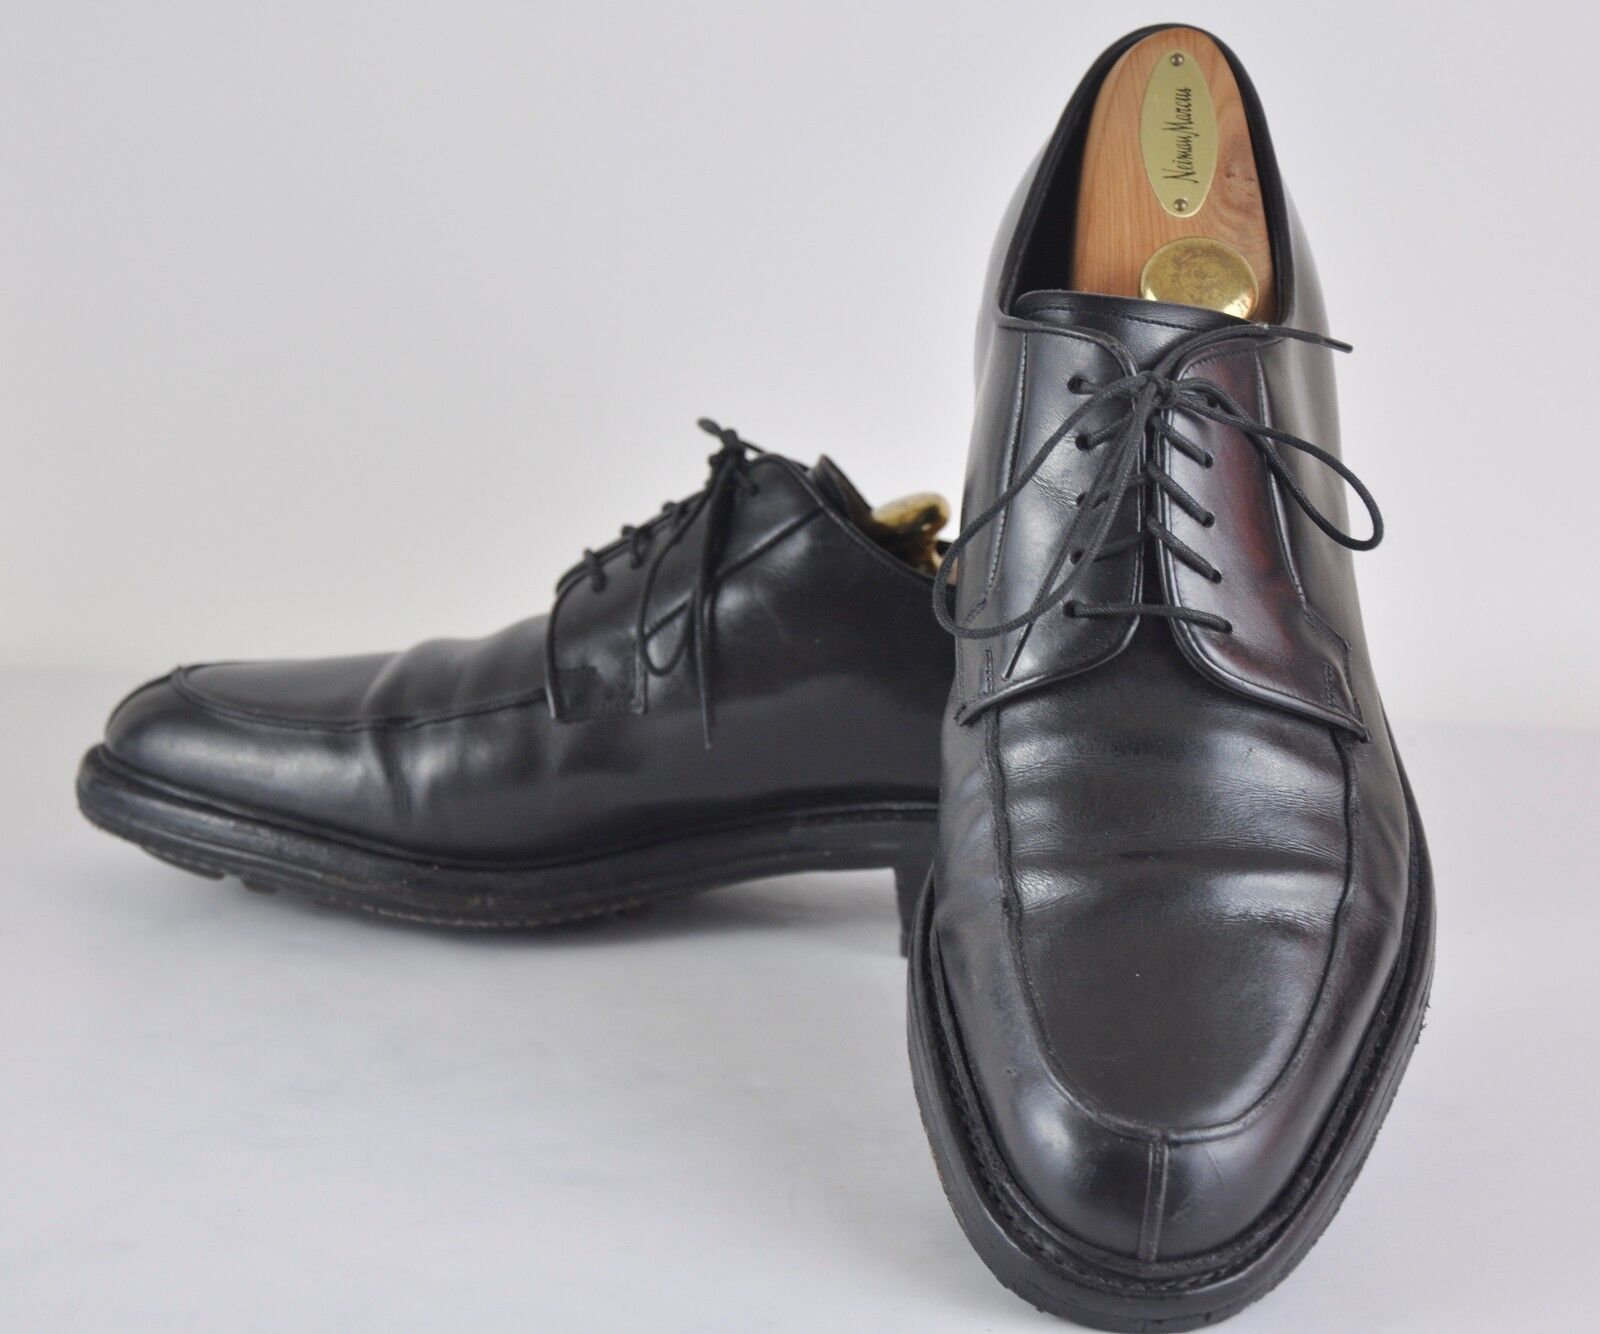 SANTONI Blake Leather Split Toe Derby Handcrafted Oxfords MADE IN ITALY 11.5 M